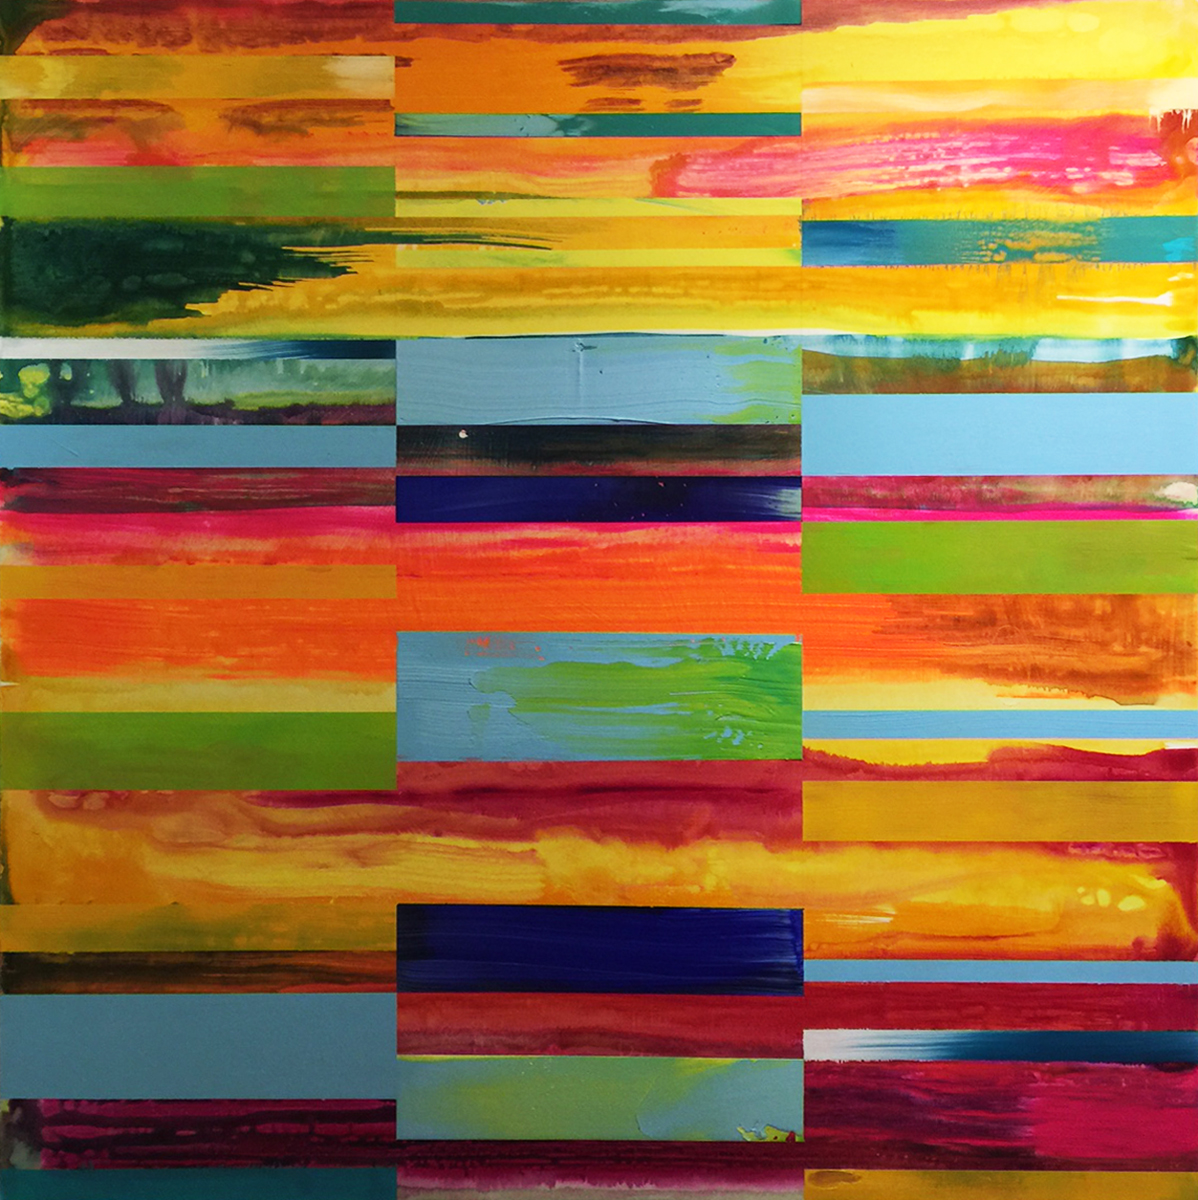 DNA Landscape_36 x 36 inches_June 2017_commissioned by Cynthia Colby for office in Toronto_1200.00 plus HST each_2 of 4_A